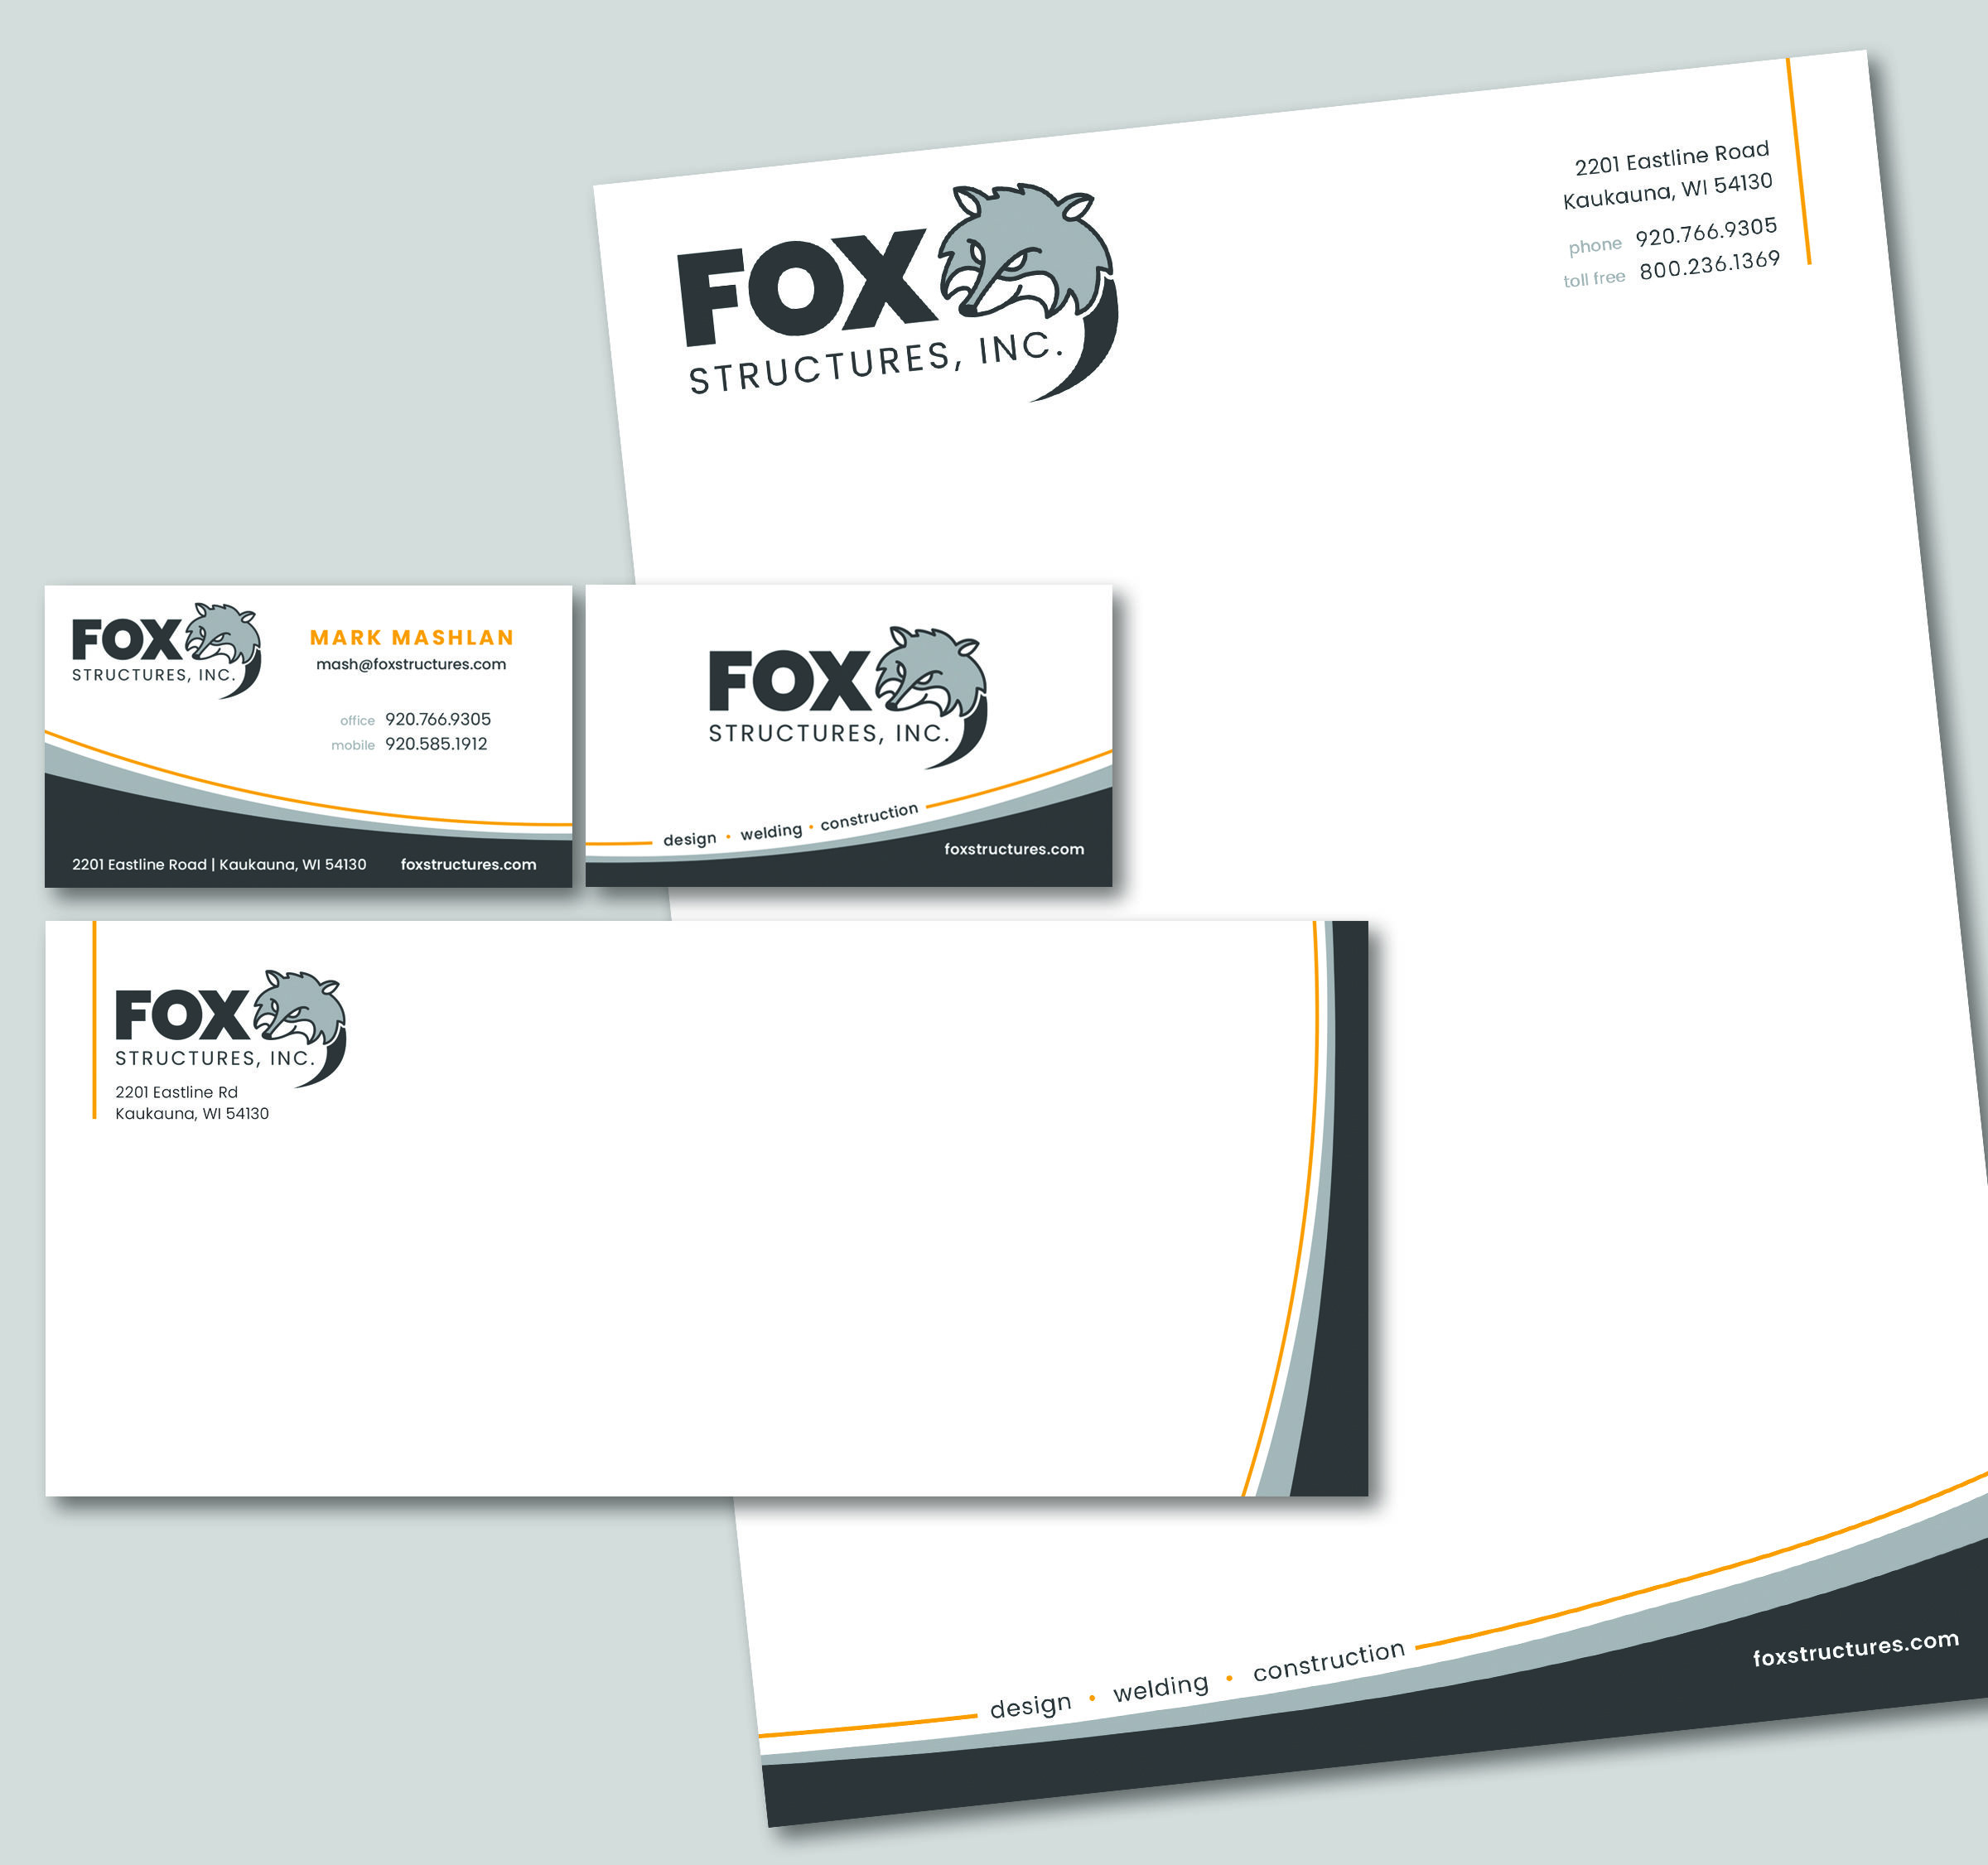 Fox Structures letterhead and business cards designed by Insight Creative